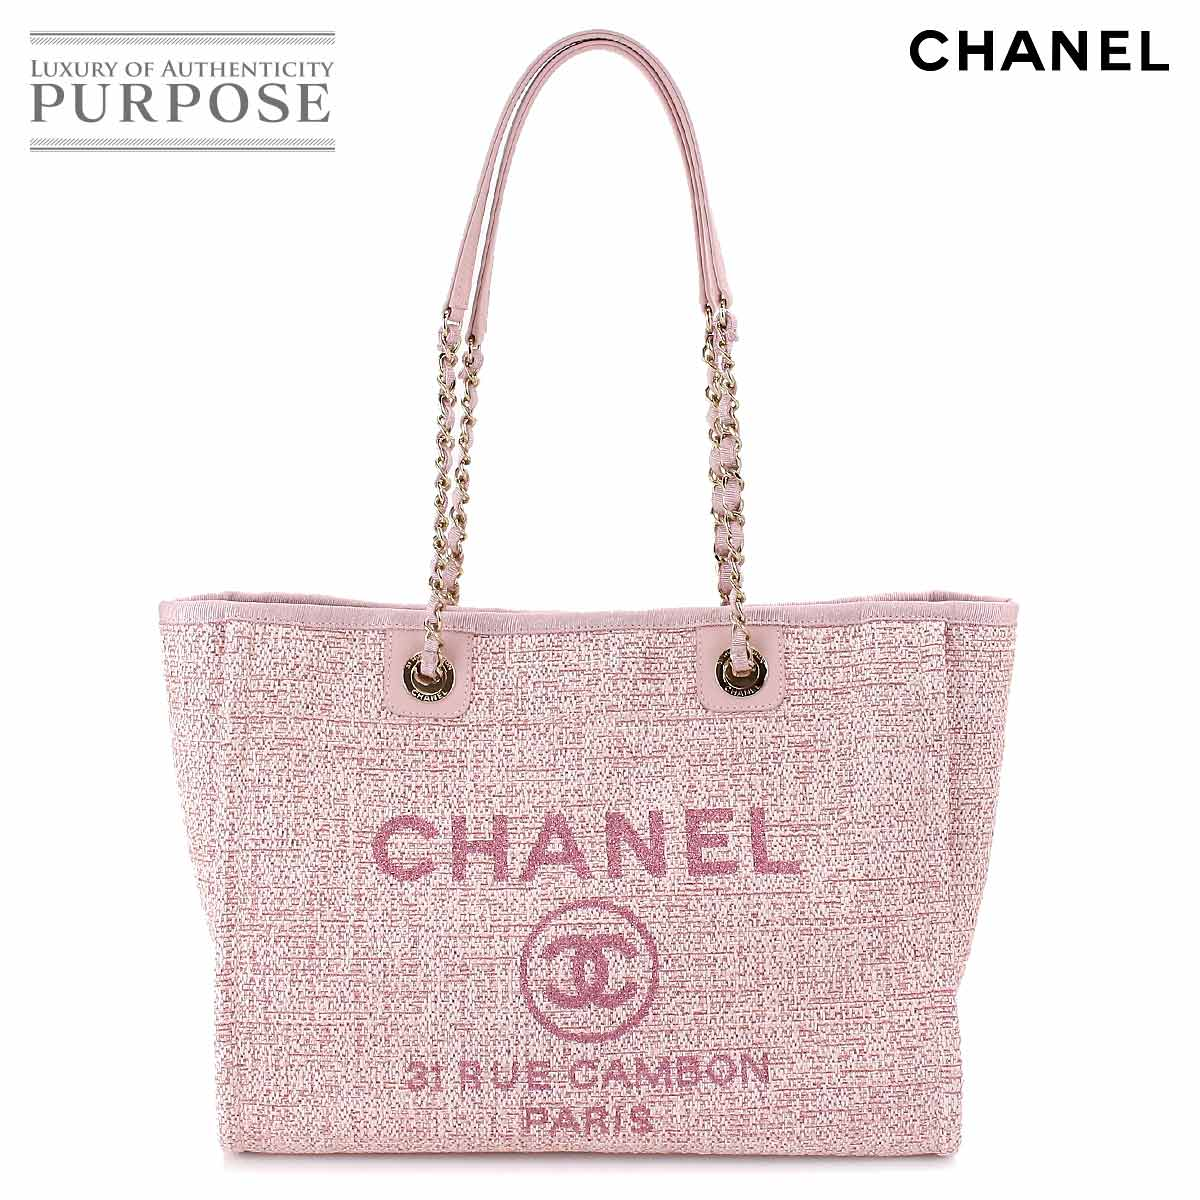 5ed95bfb0 [unused display] Chanel CHANEL Deauville MM chain tote bag canvas pink  A67001 [used] brand